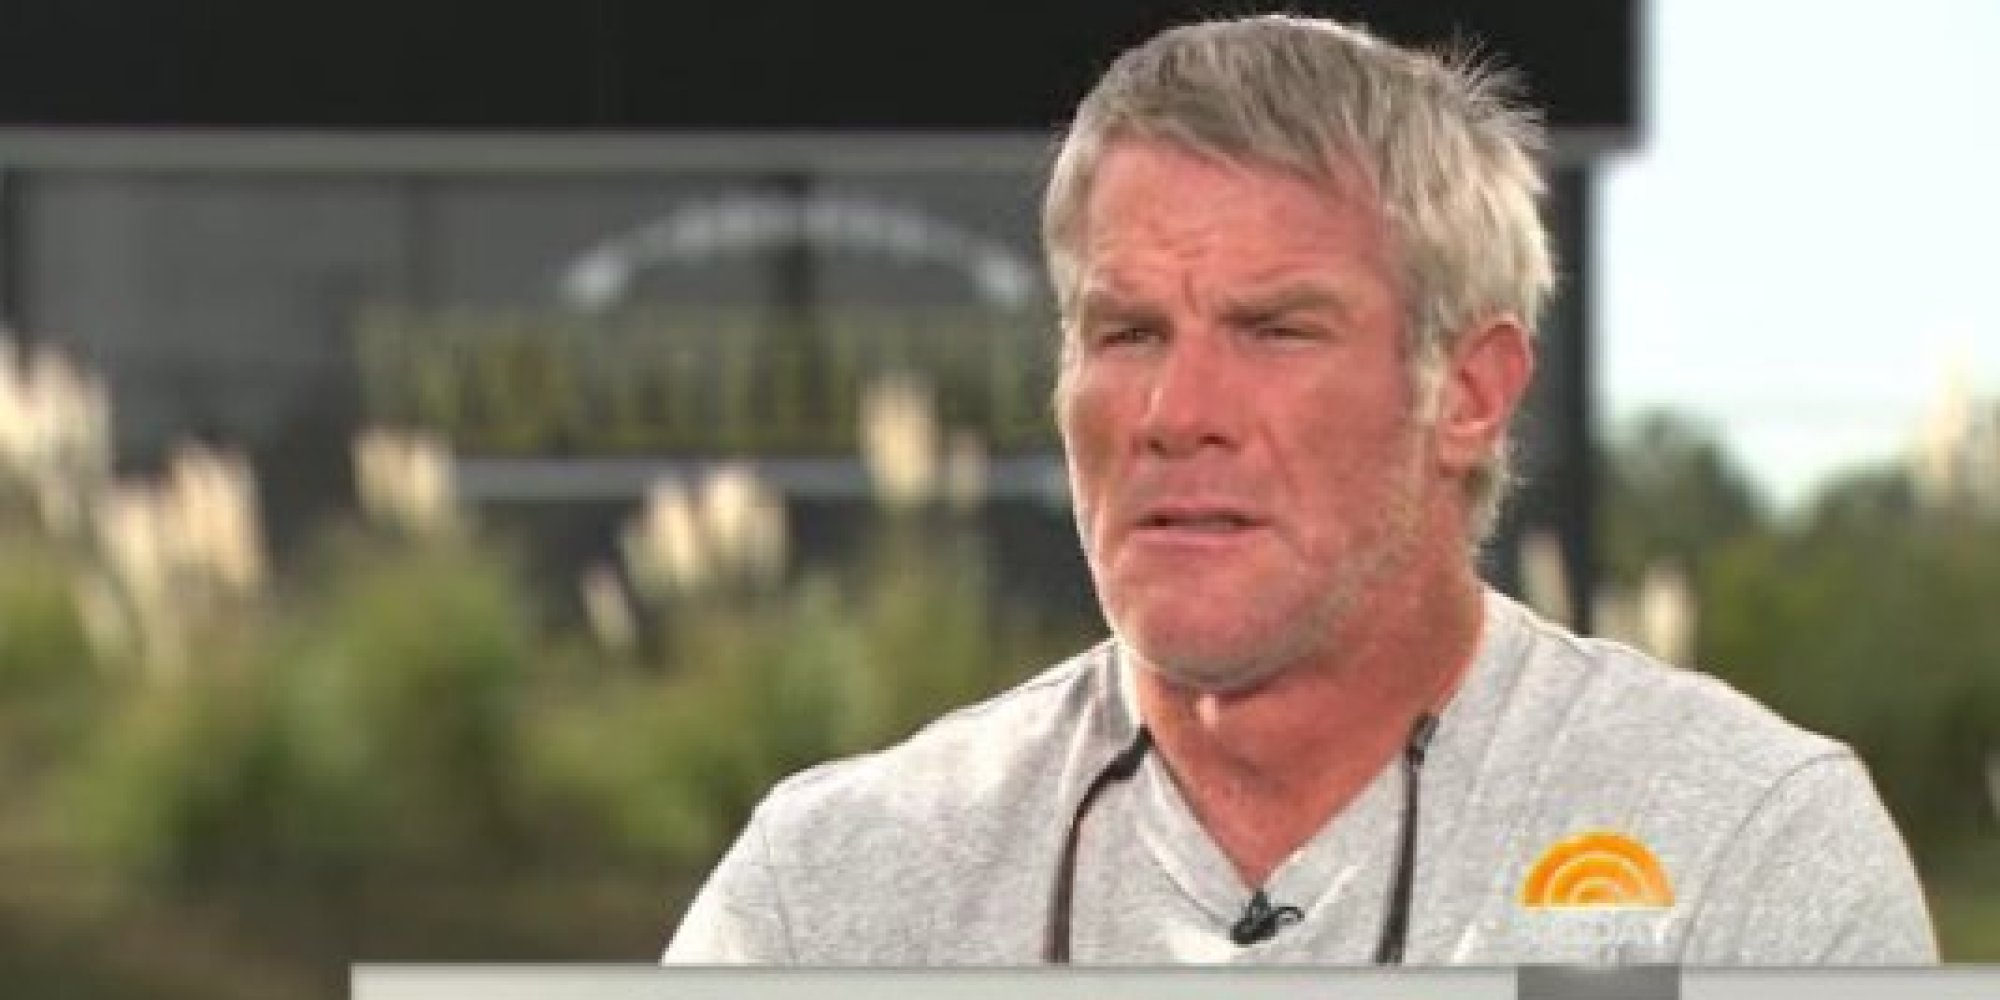 brett favre would be real leery of a son playing football video  brett favre would be real leery of a son playing football video huffpost